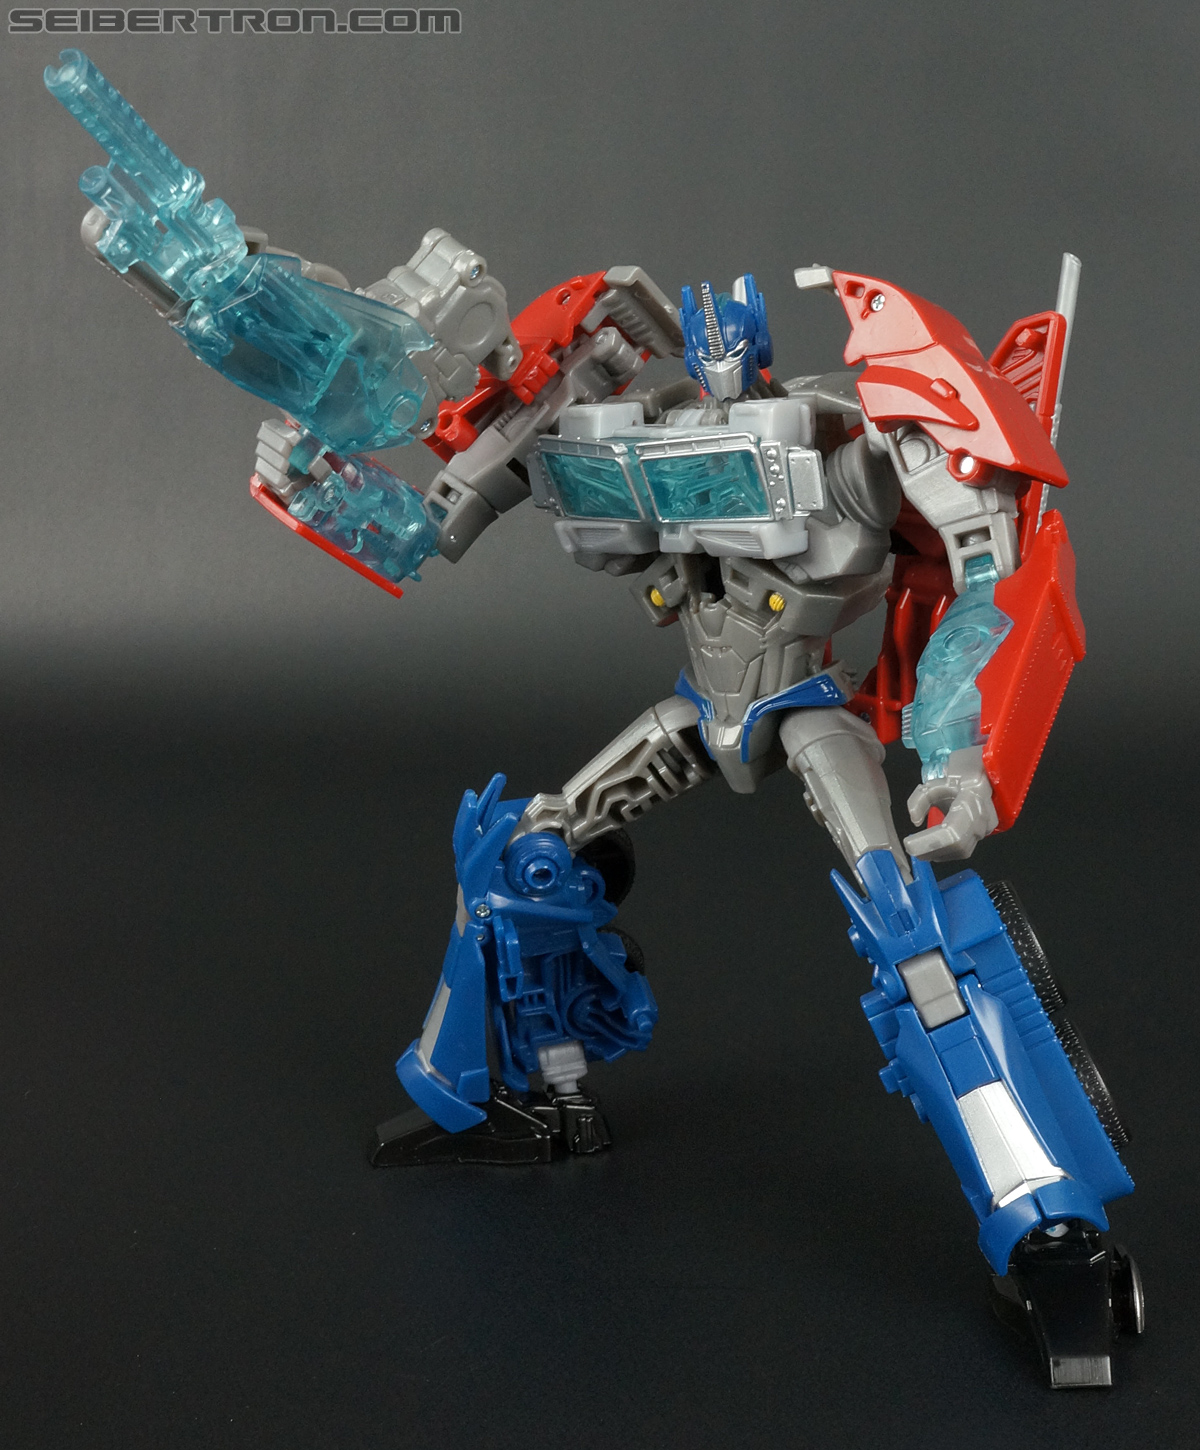 Transformers Prime: Robots In Disguise Optimus Prime (Image #133 of 176)